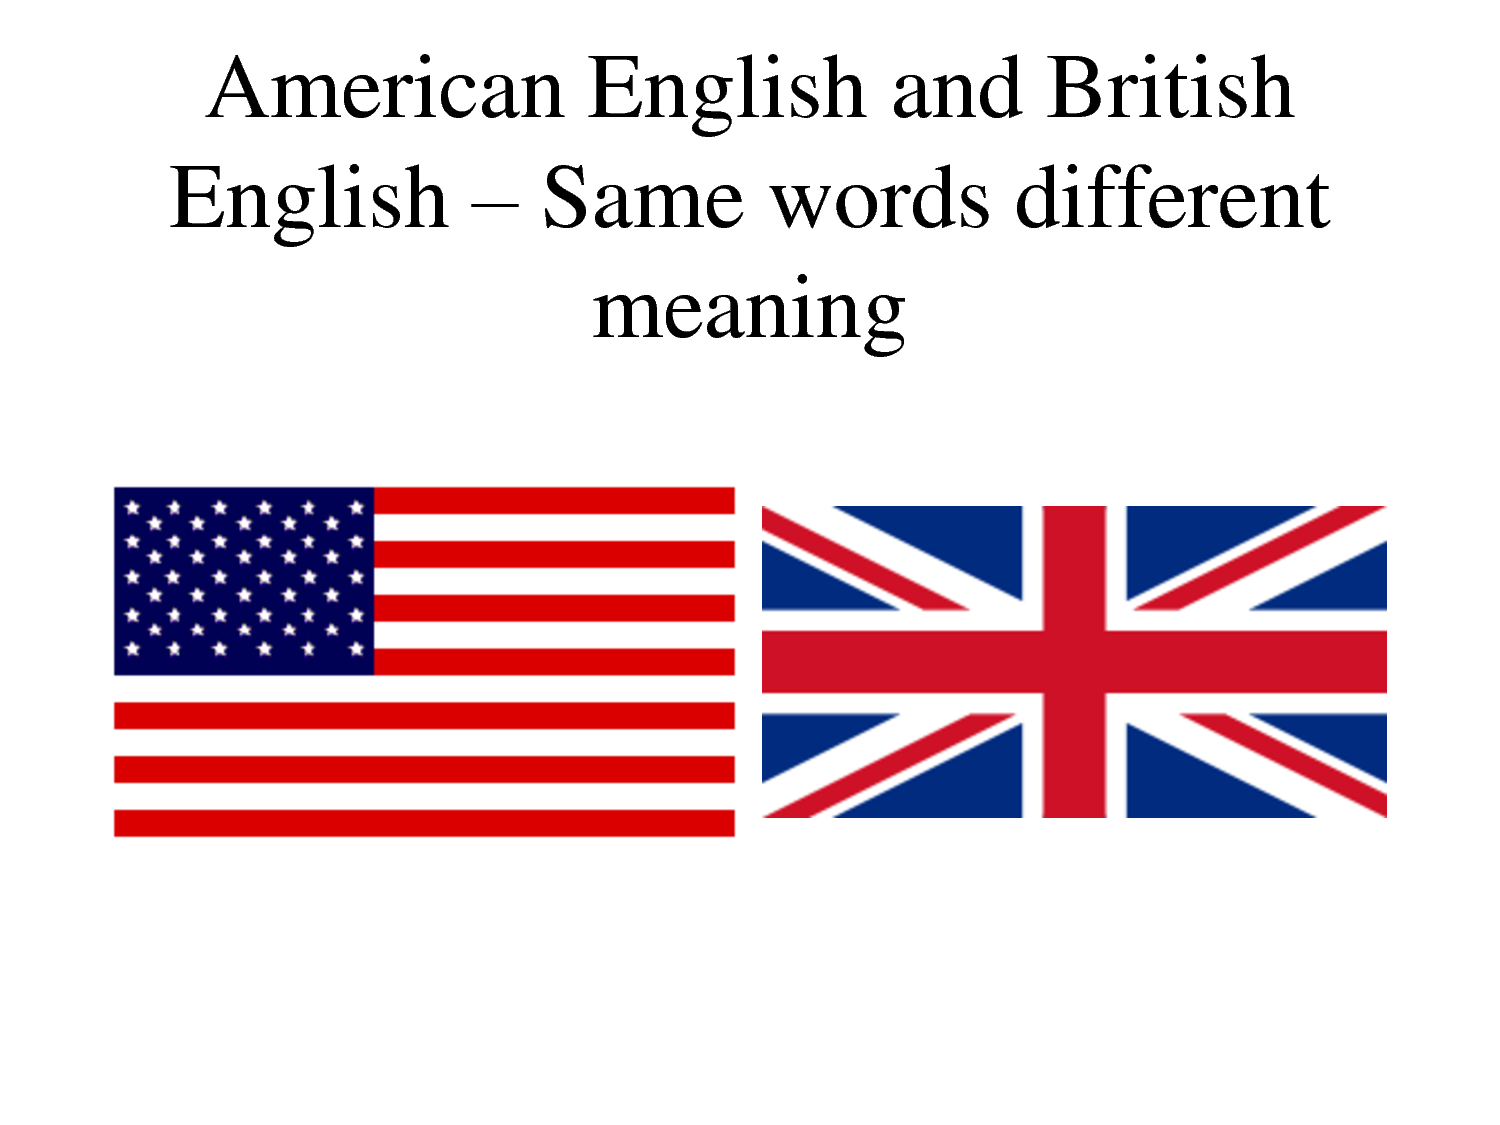 difference between american and british english essay Open document below is an essay on american and british english from anti essays, your source for research papers, essays, and term paper examples.